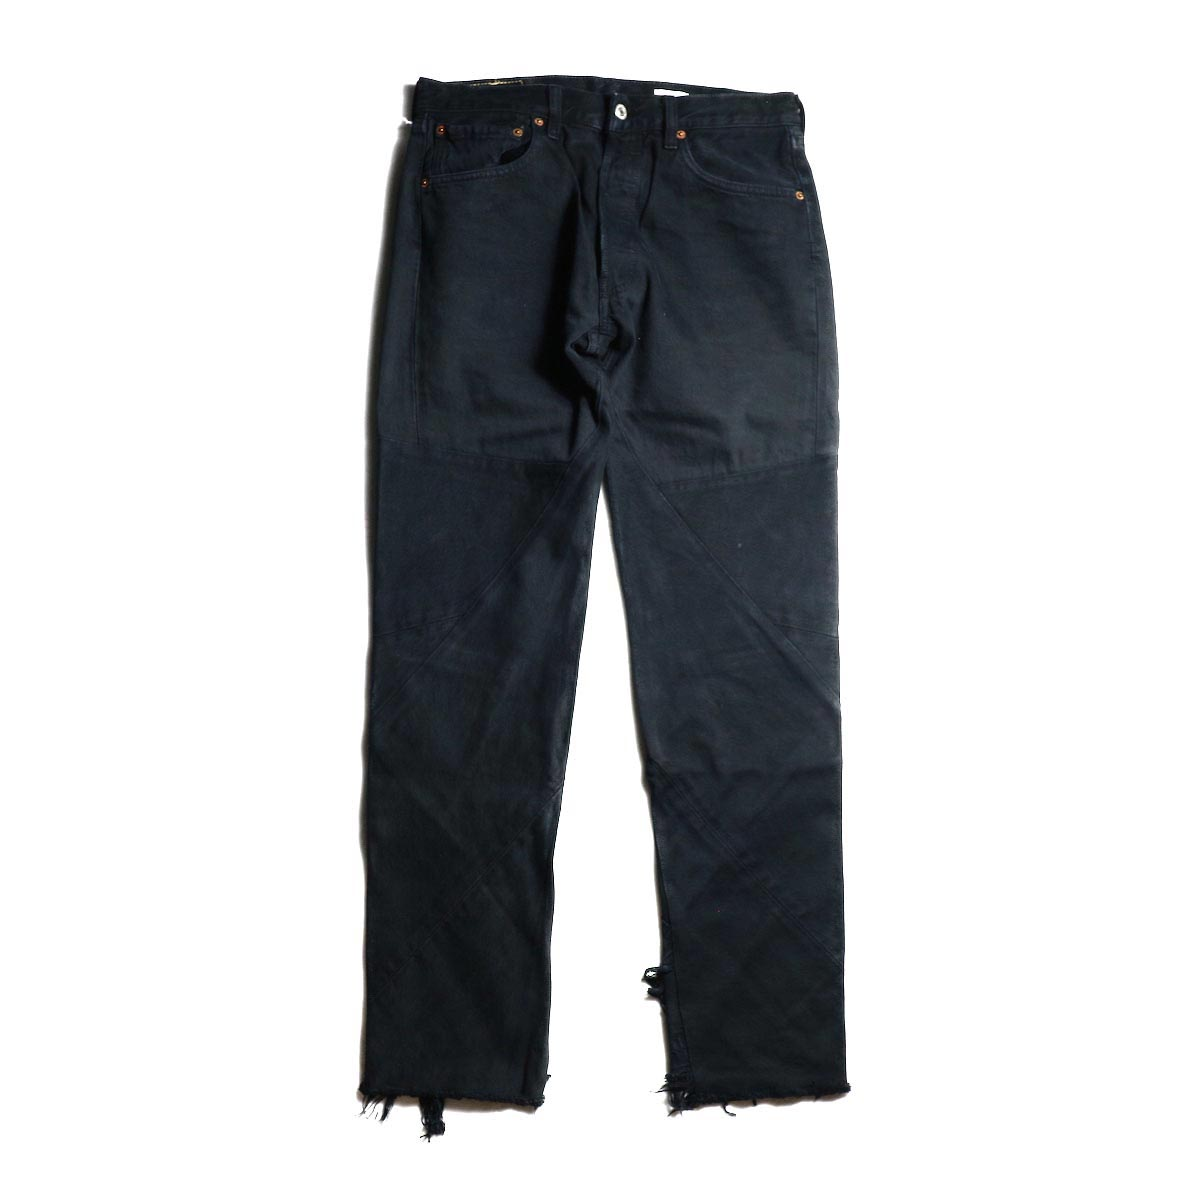 OLD PARK / SHIFT JEANS (Msize-C)